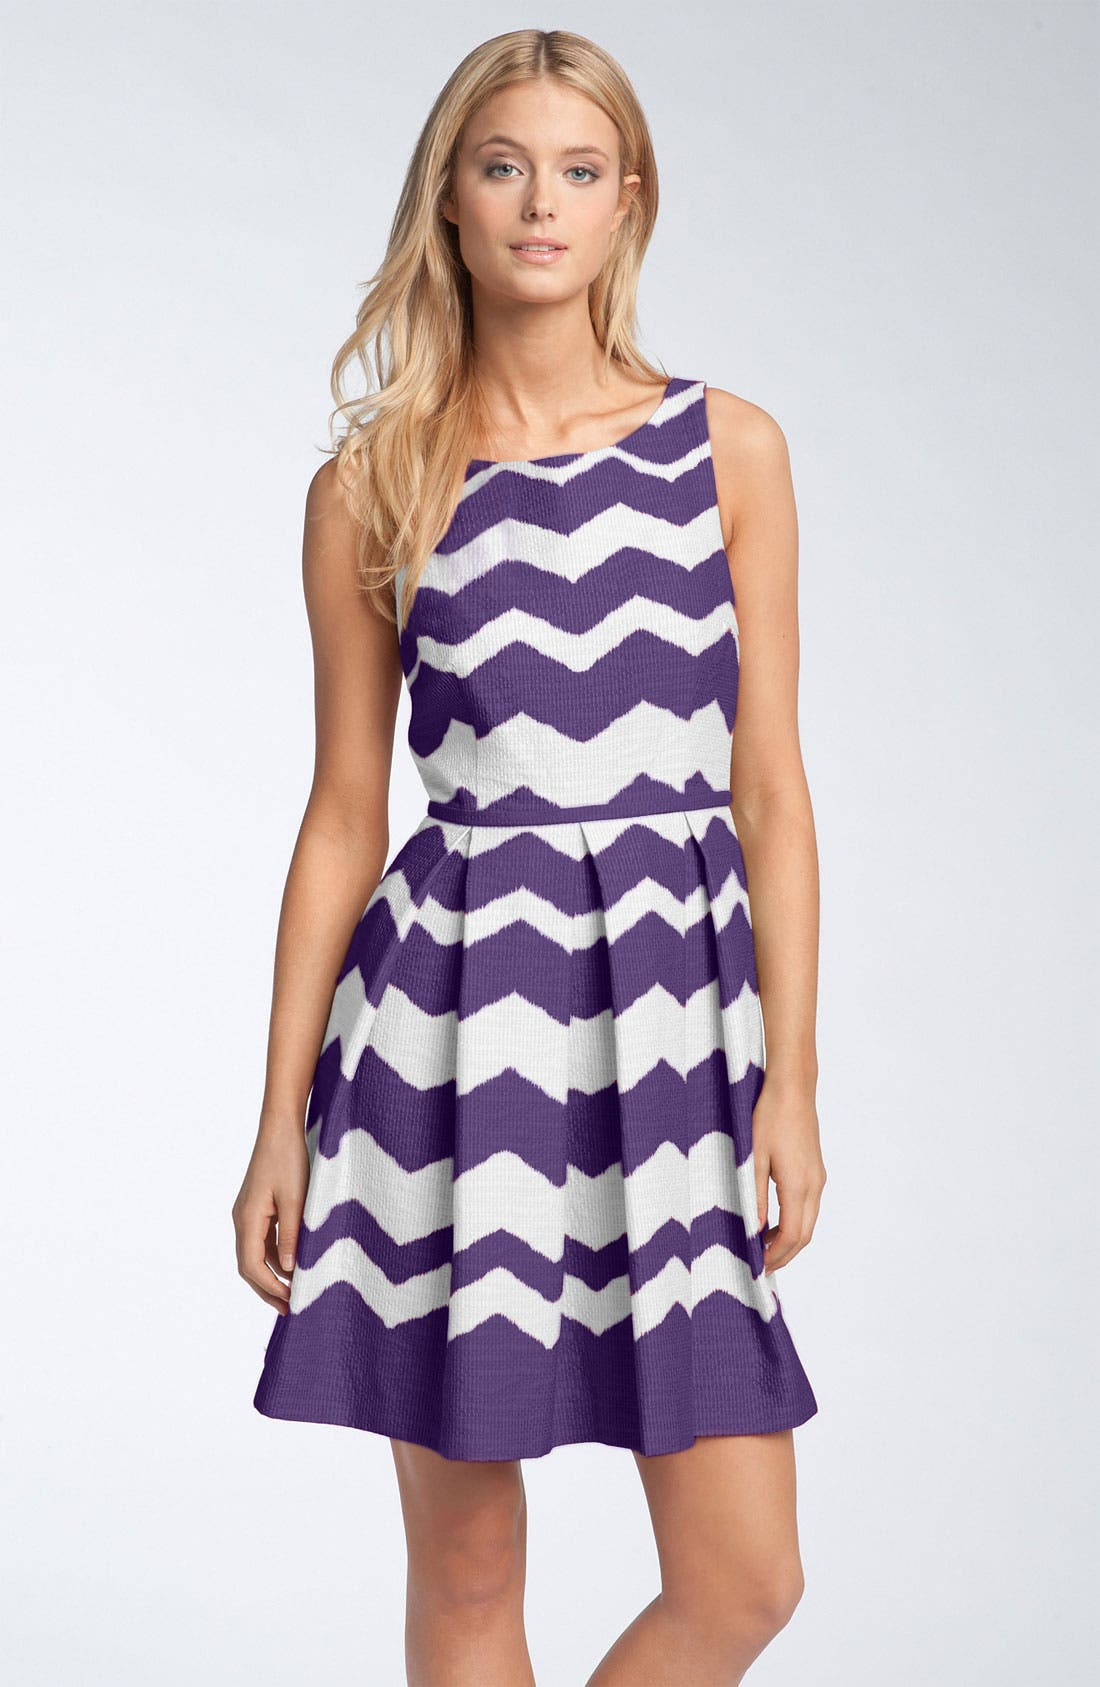 Alternate Image 1 Selected - Taylor Dresses 'Zigzag' Fit & Flare Dress